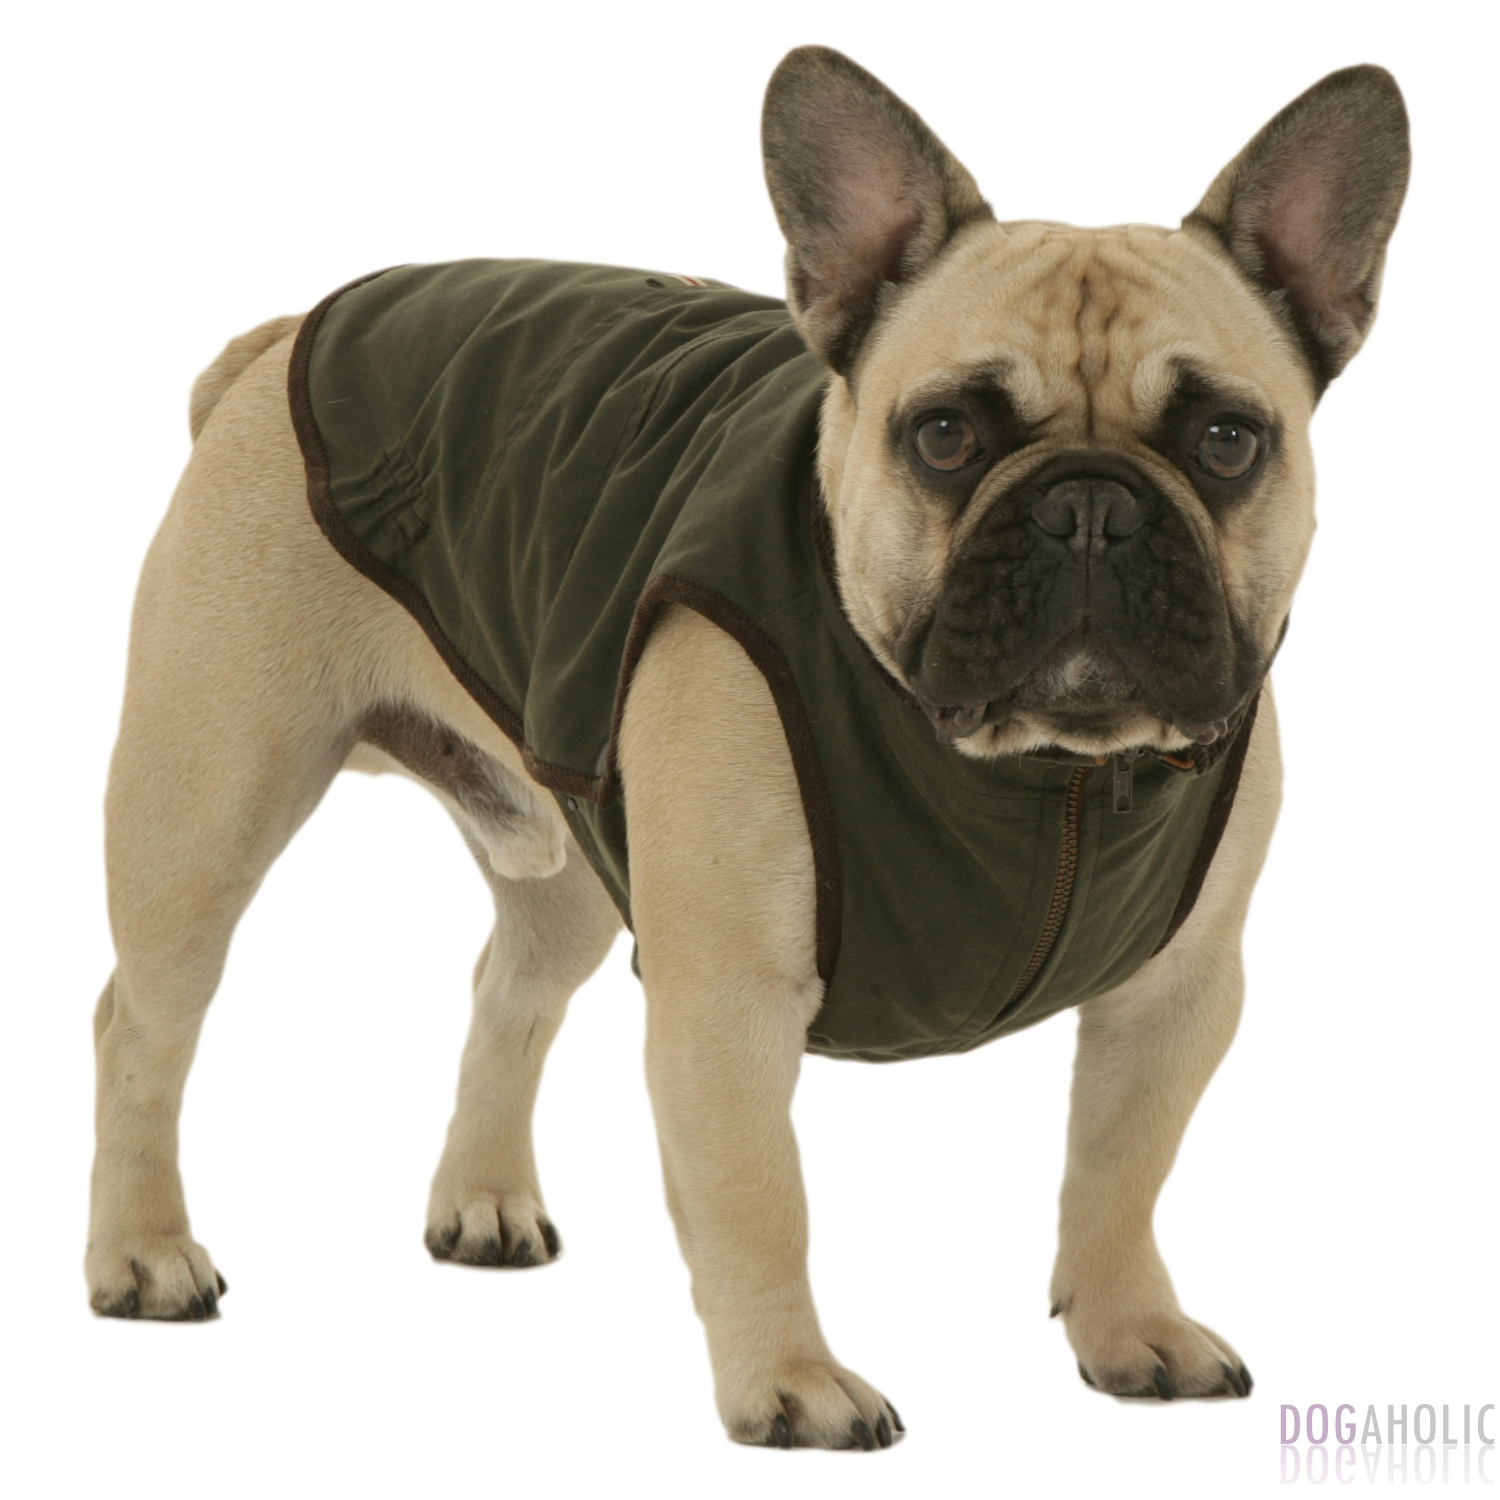 Dogissimo Windsor Coat for French Bulldogs